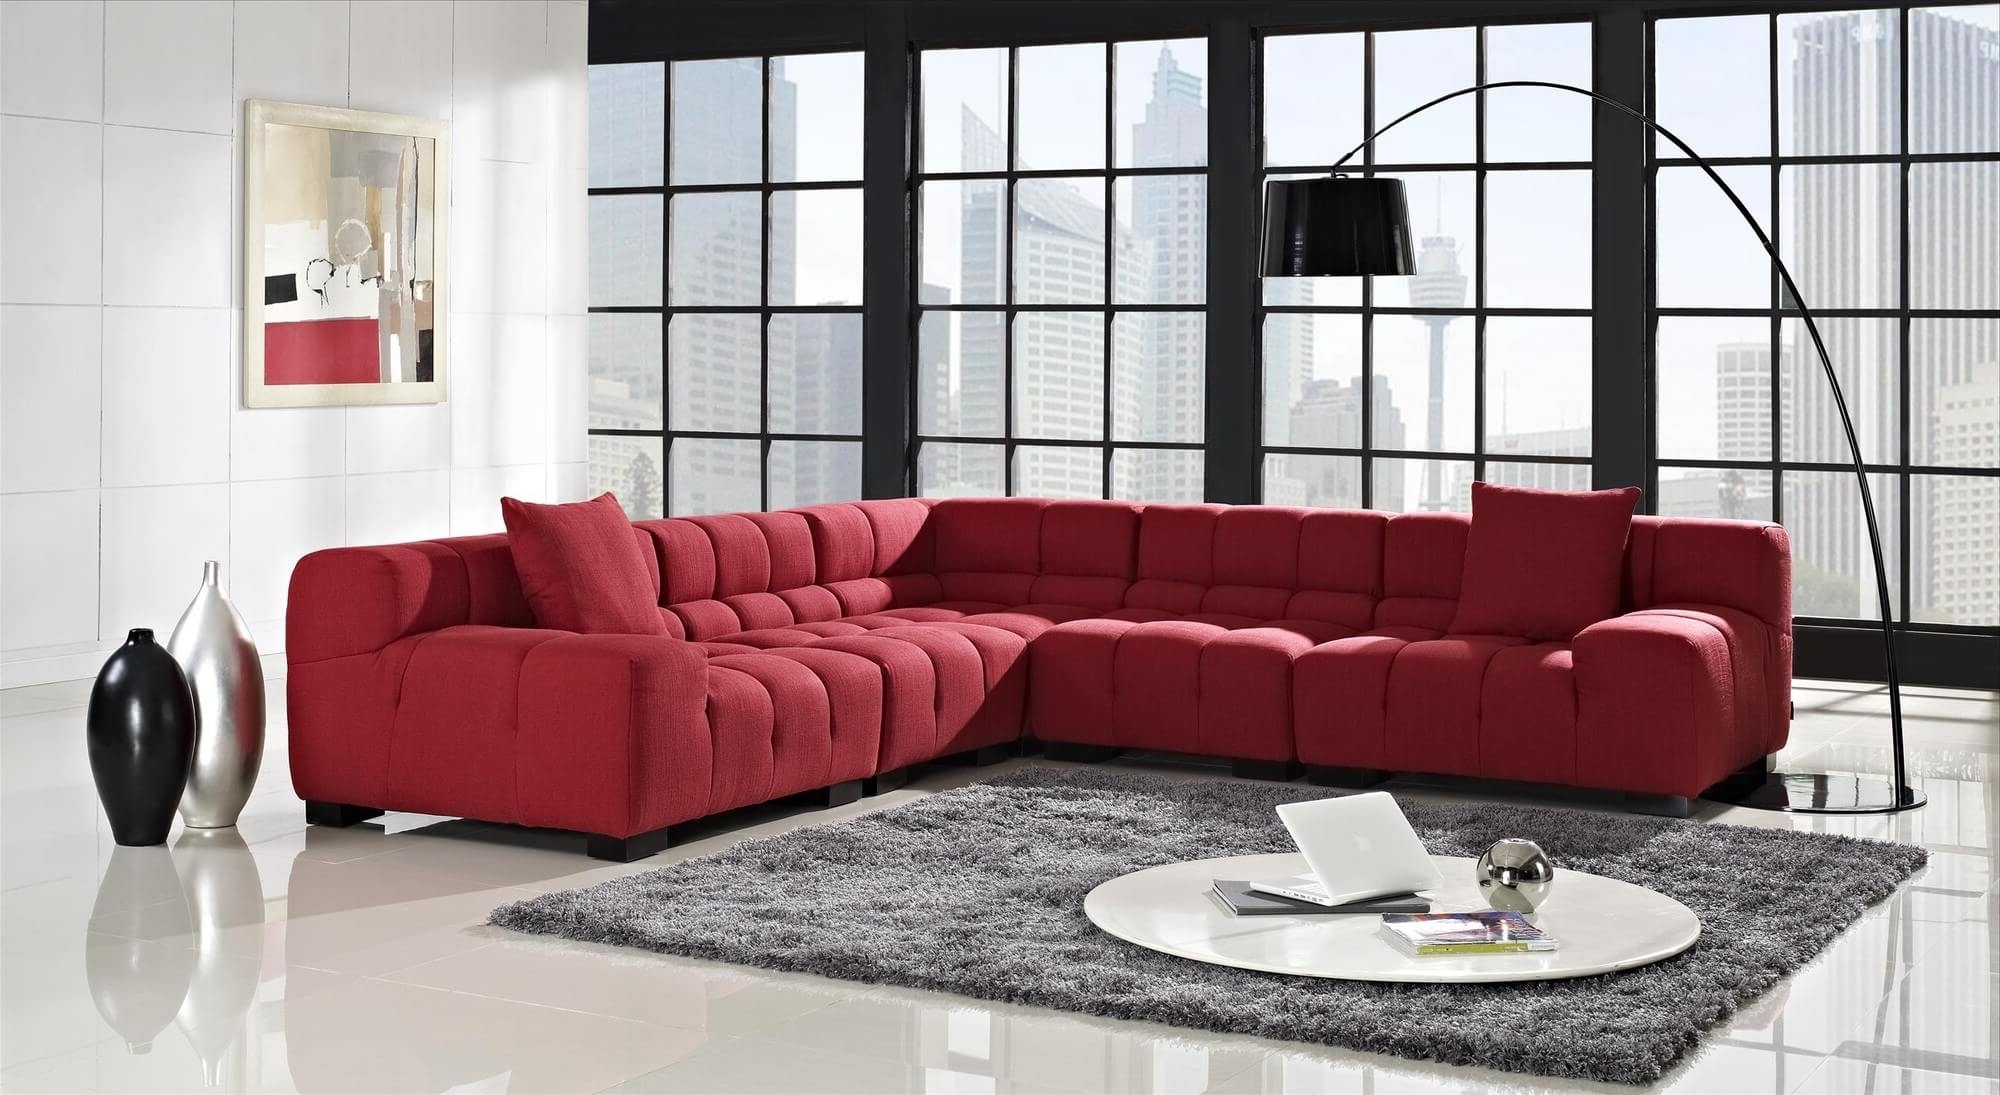 Well Known Ethan Allen Charlotte Nc Modern Italian Leather Sofa Ethan Allen With Regard To Sectional Sofas At Charlotte Nc (View 19 of 20)